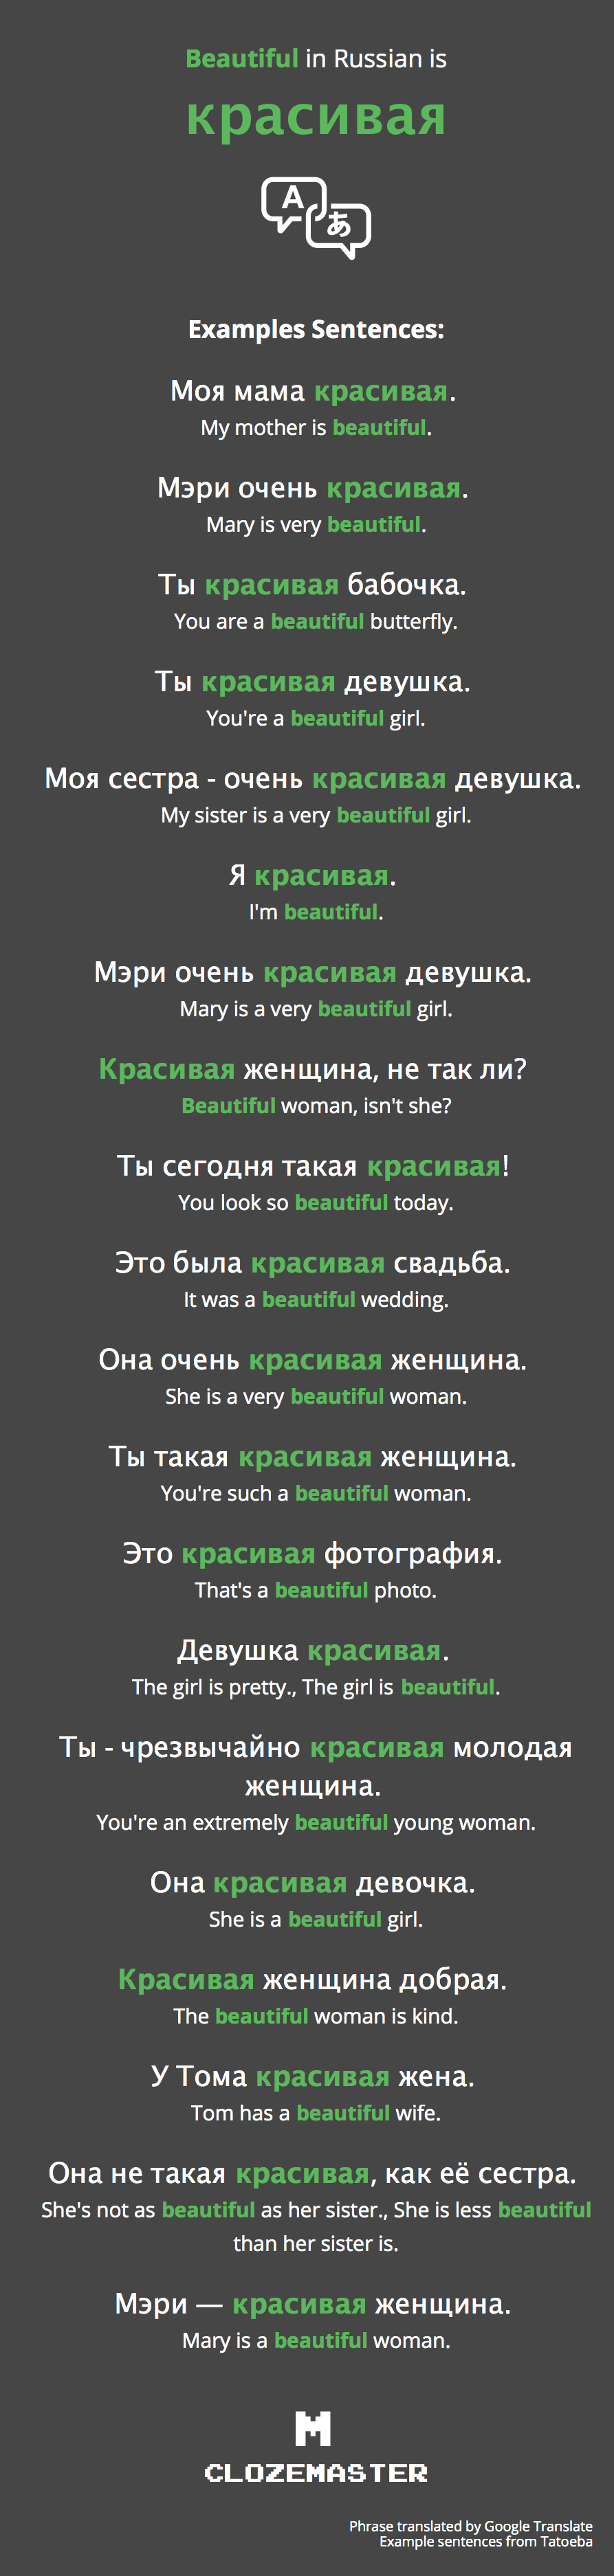 Images - How do you say beautiful in russian